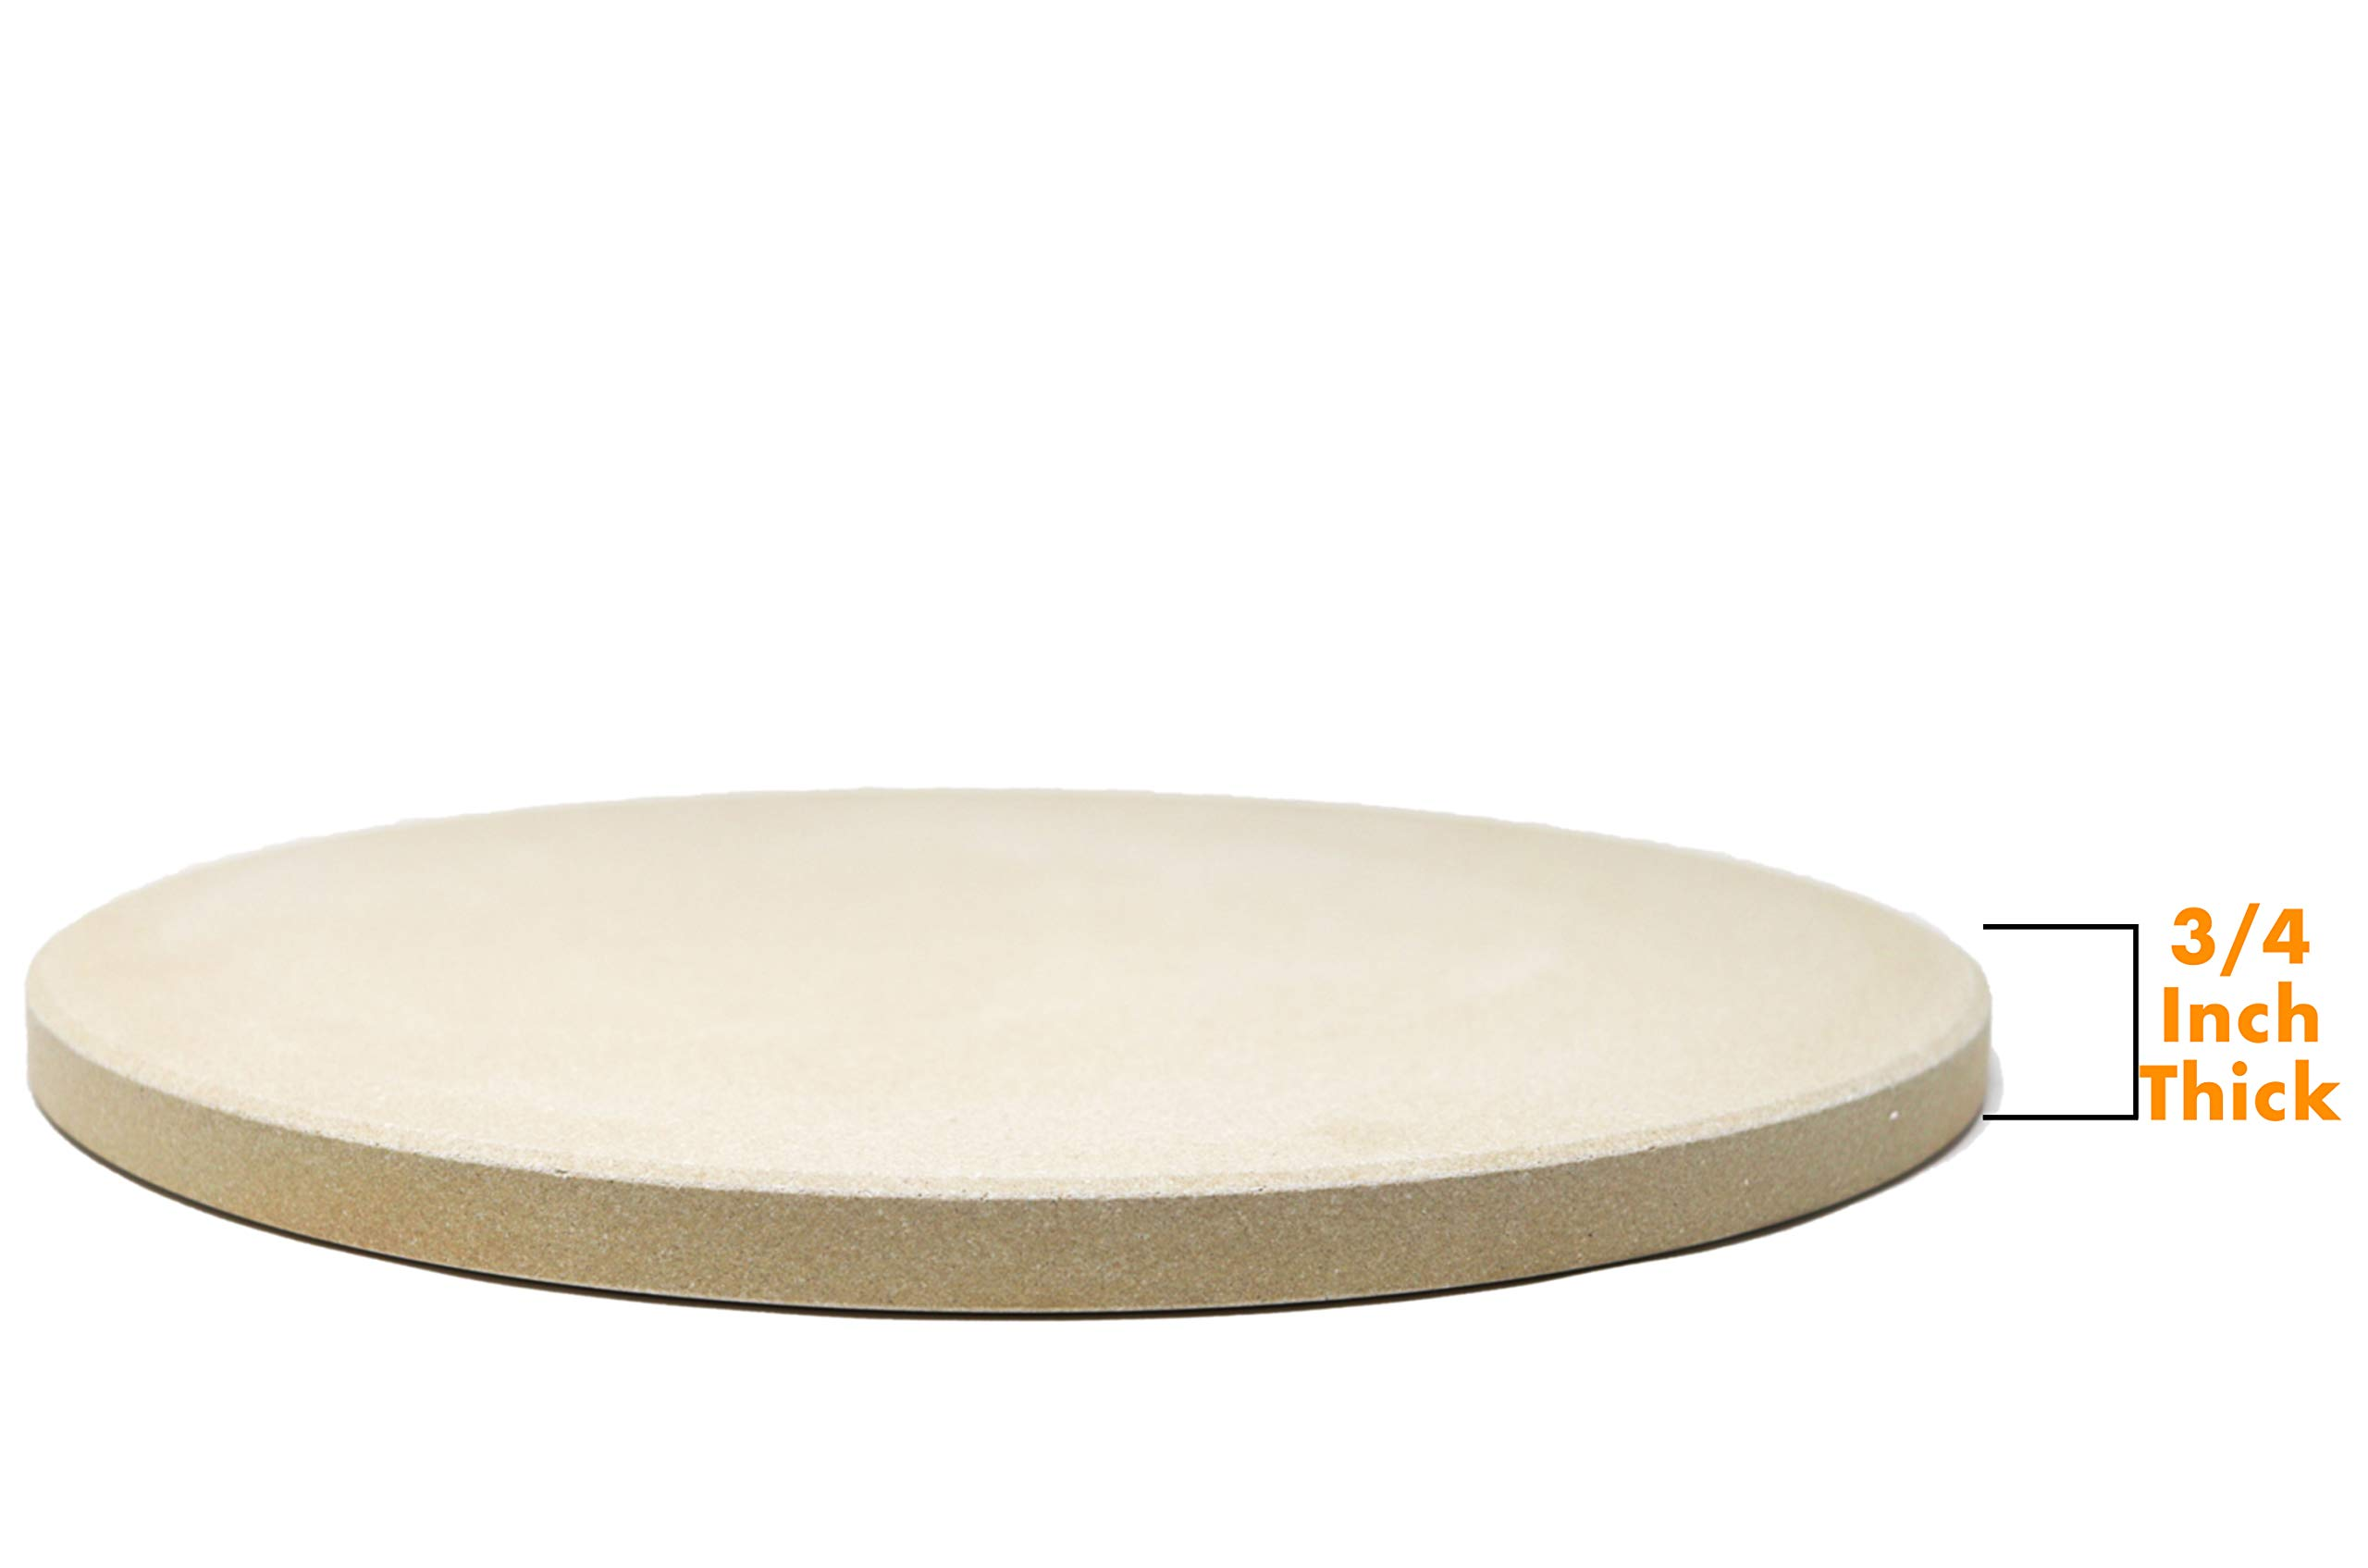 Aura Outdoor Products Extra Thick Pizza Stone - Perfect Crusts and Improved Heat Deflection by Aura Outdoor Products